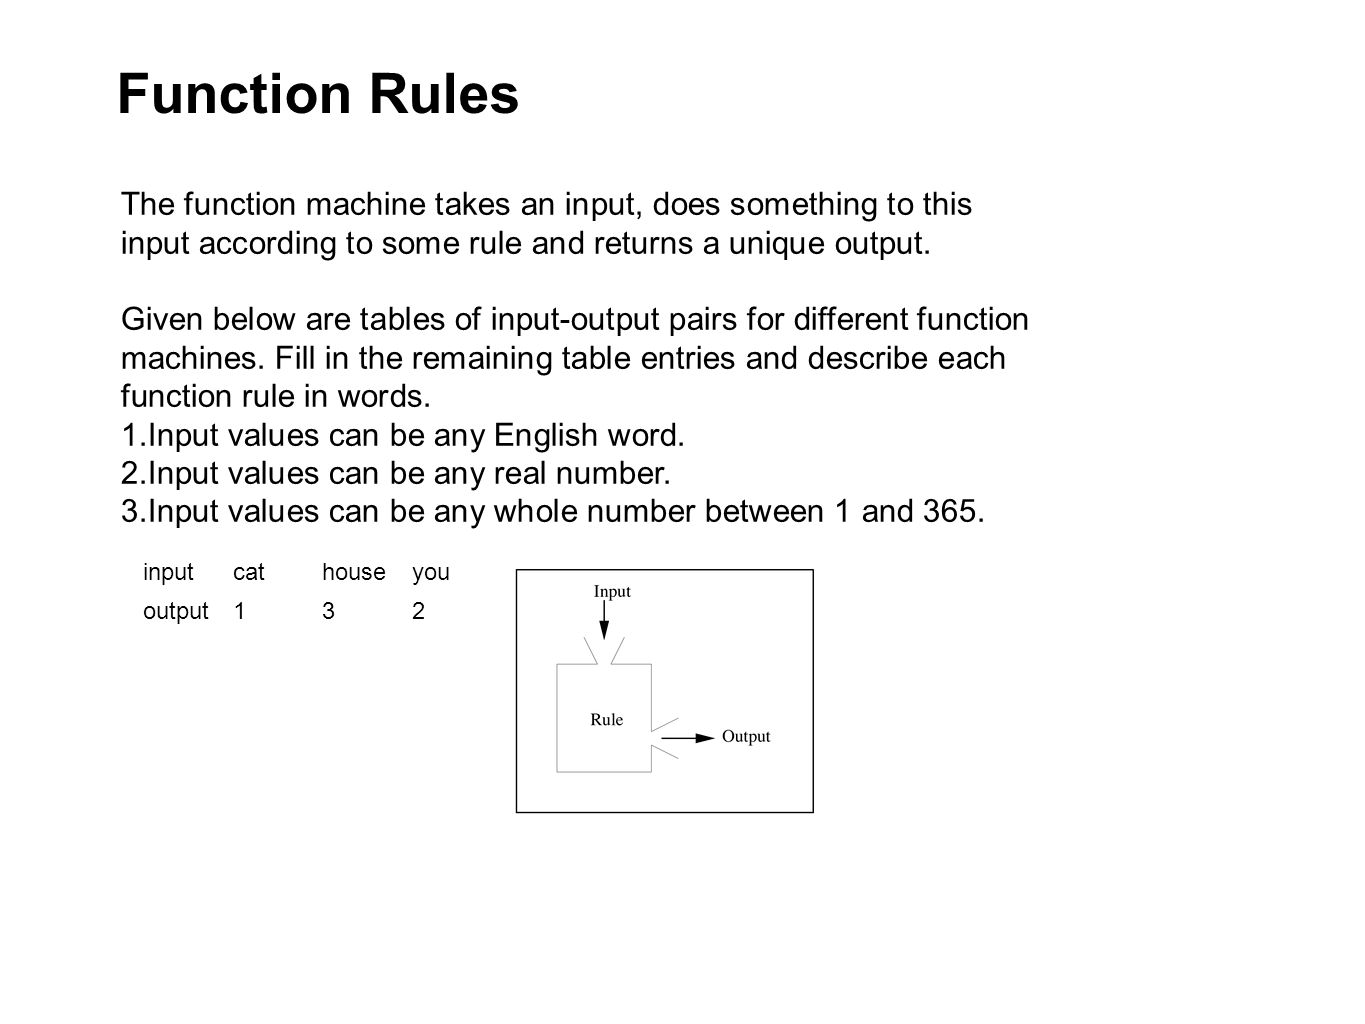 Function Rules The function machine takes an input, does something to this input according to some rule and returns a unique output.